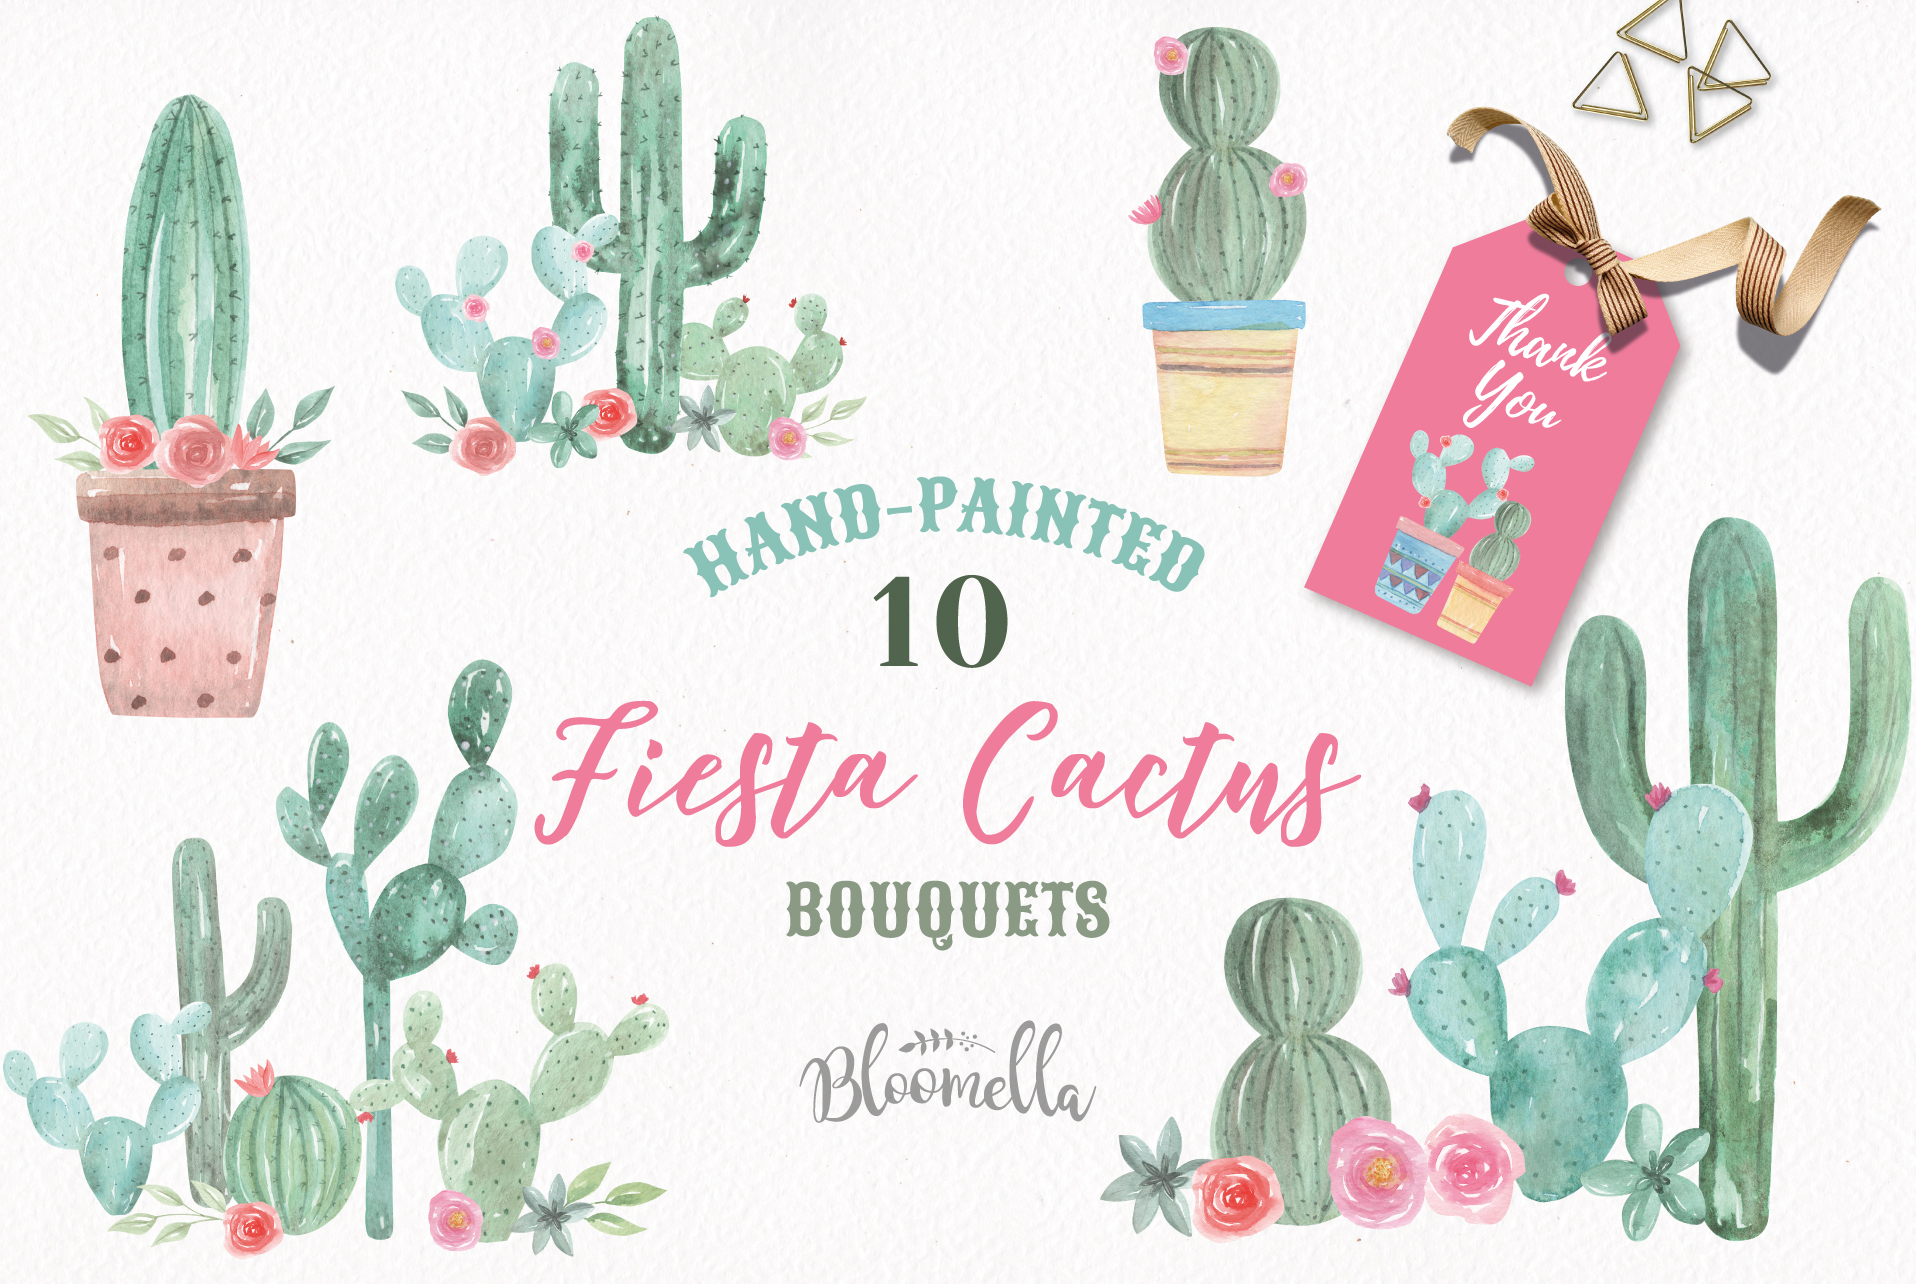 Download Free Cactus Watercolor Florals Graphic By Bloomella Creative Fabrica for Cricut Explore, Silhouette and other cutting machines.